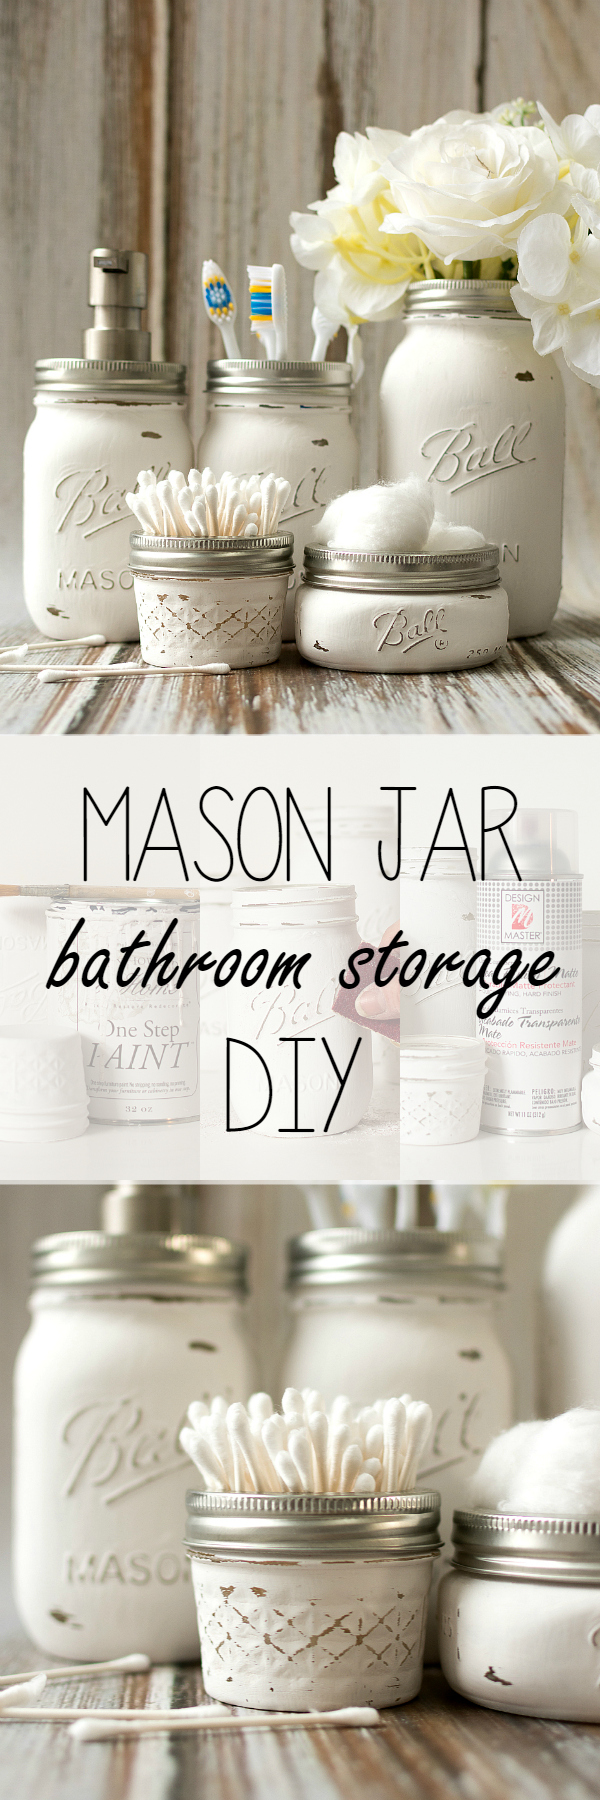 DIY Bathroom Organizer Ideas   Do It Yourself Pretty Distressed Mason Jar  Bathroom Organizers Craft Project